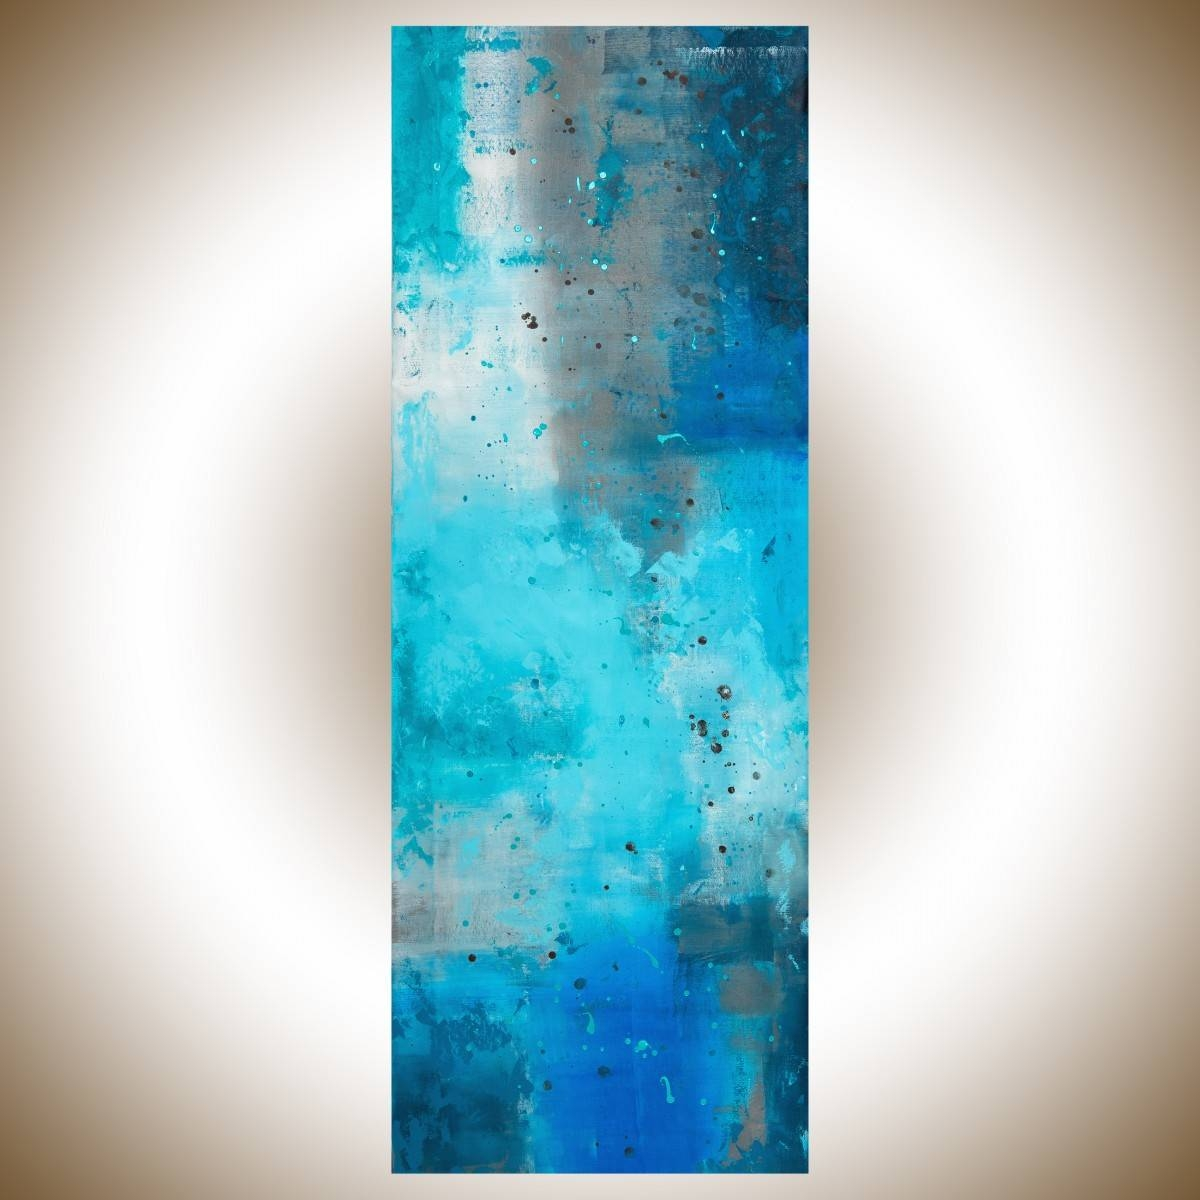 "The Mistqiqigallery 70""x24"" Un Stretched Canvas Original Within Most Recent Turquoise And Brown Wall Art (View 22 of 25)"